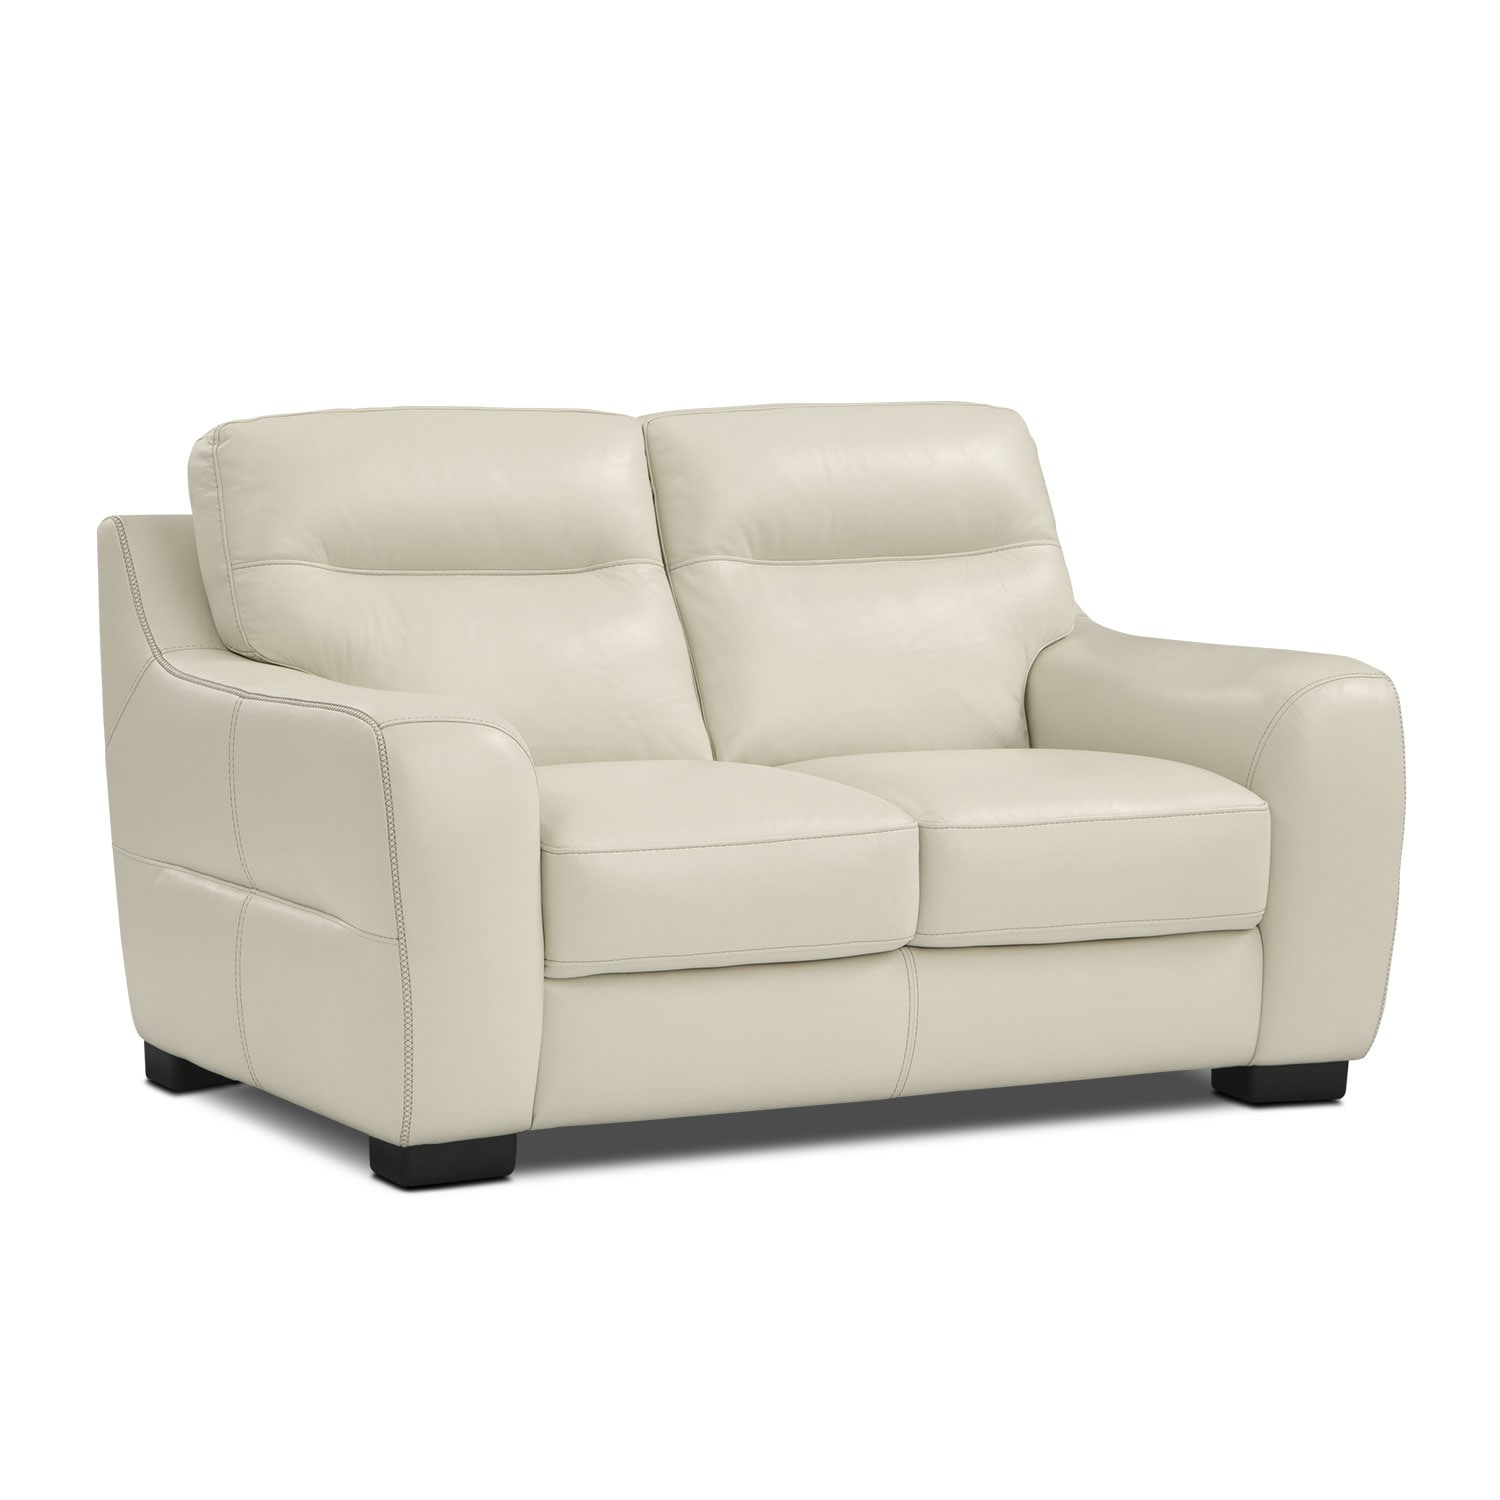 Living Room Furniture - Rocco Loveseat - Snow